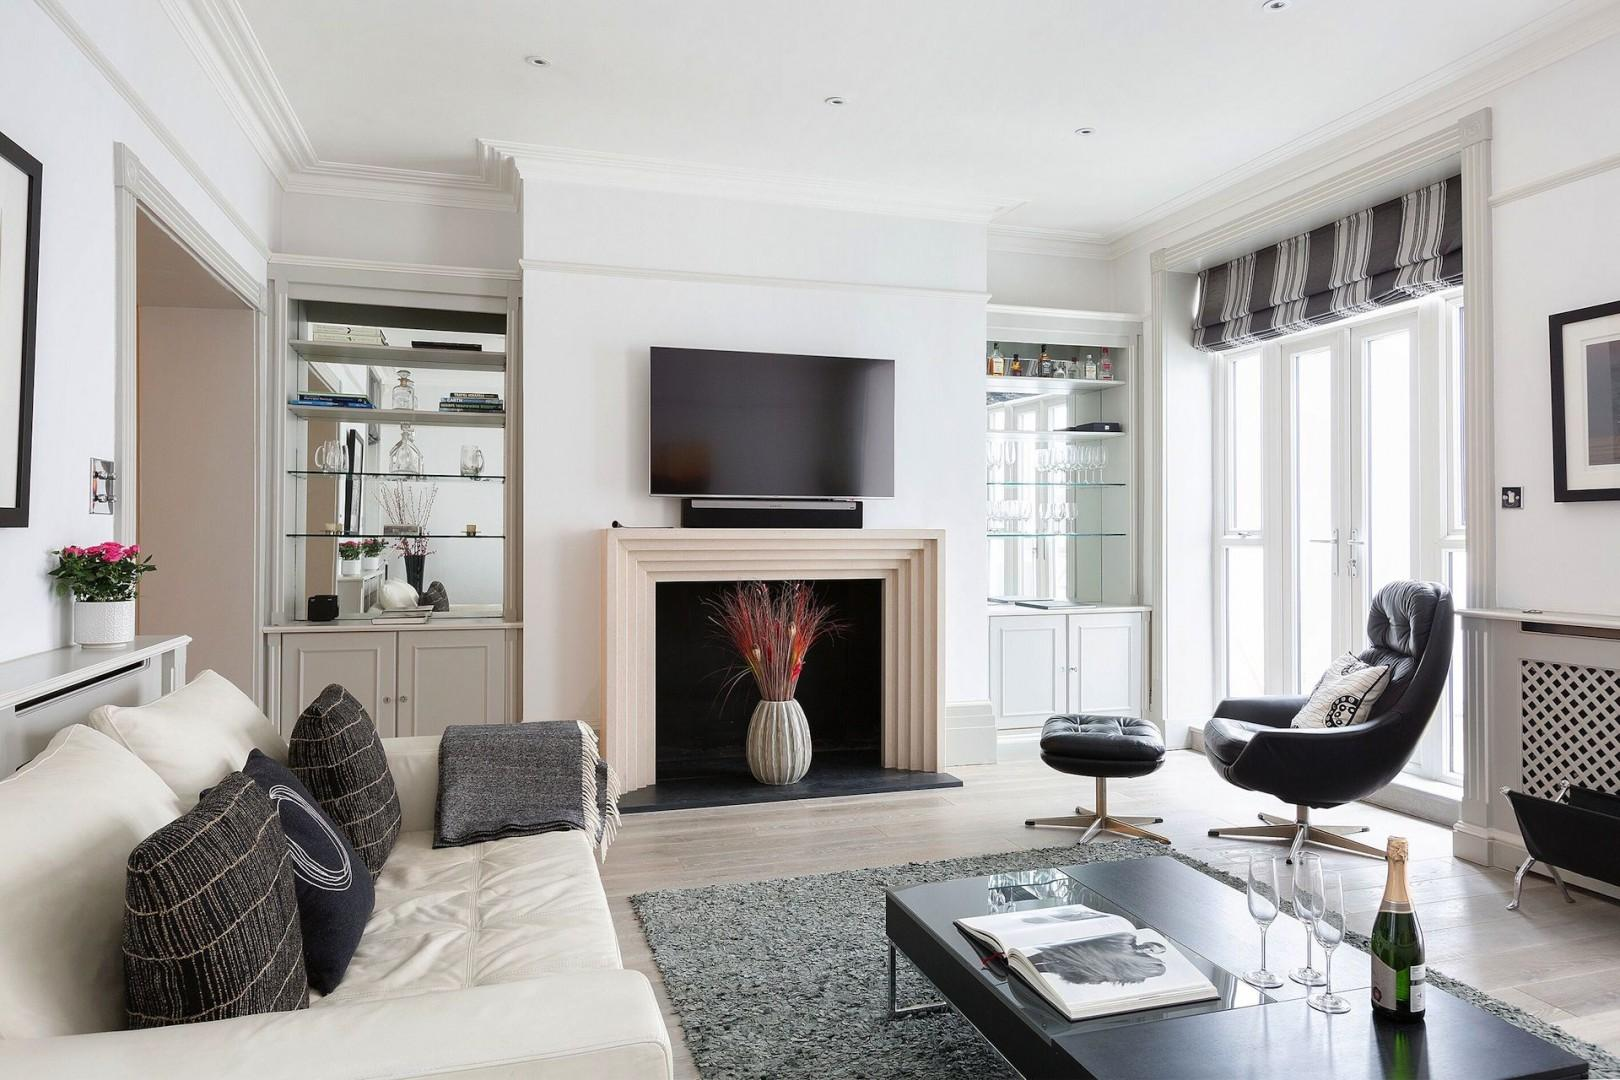 Beautiful high ceilings in the living room, rare for this type of apartment